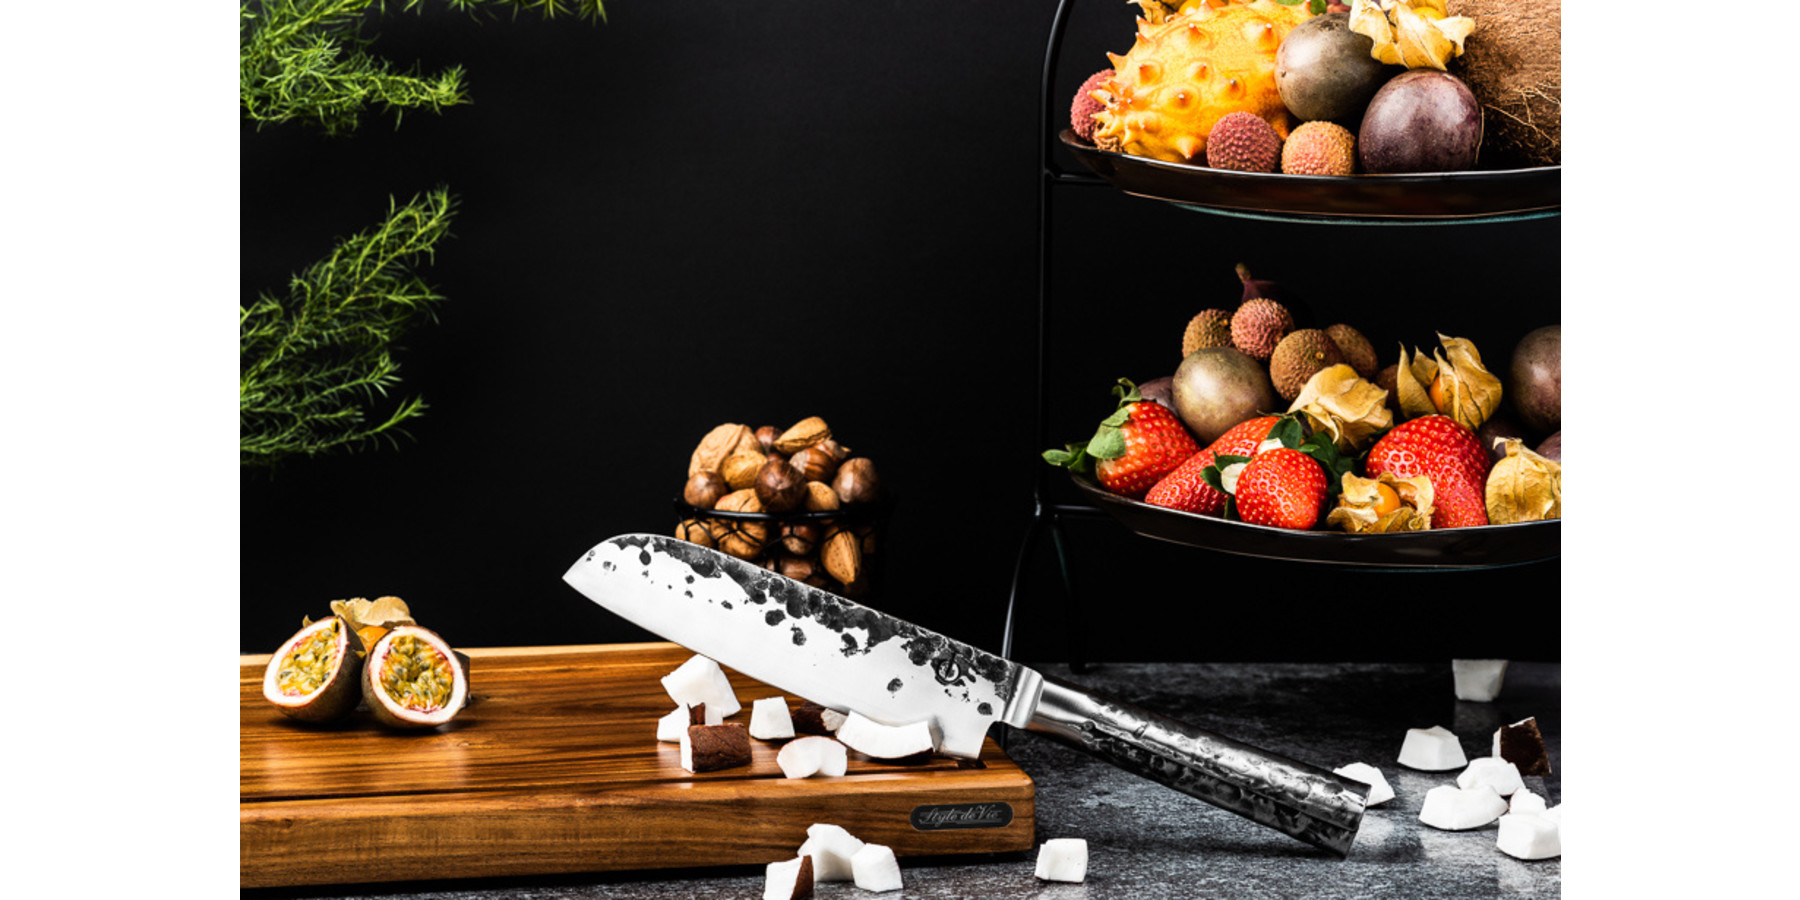 Intense Forged Santoku mes